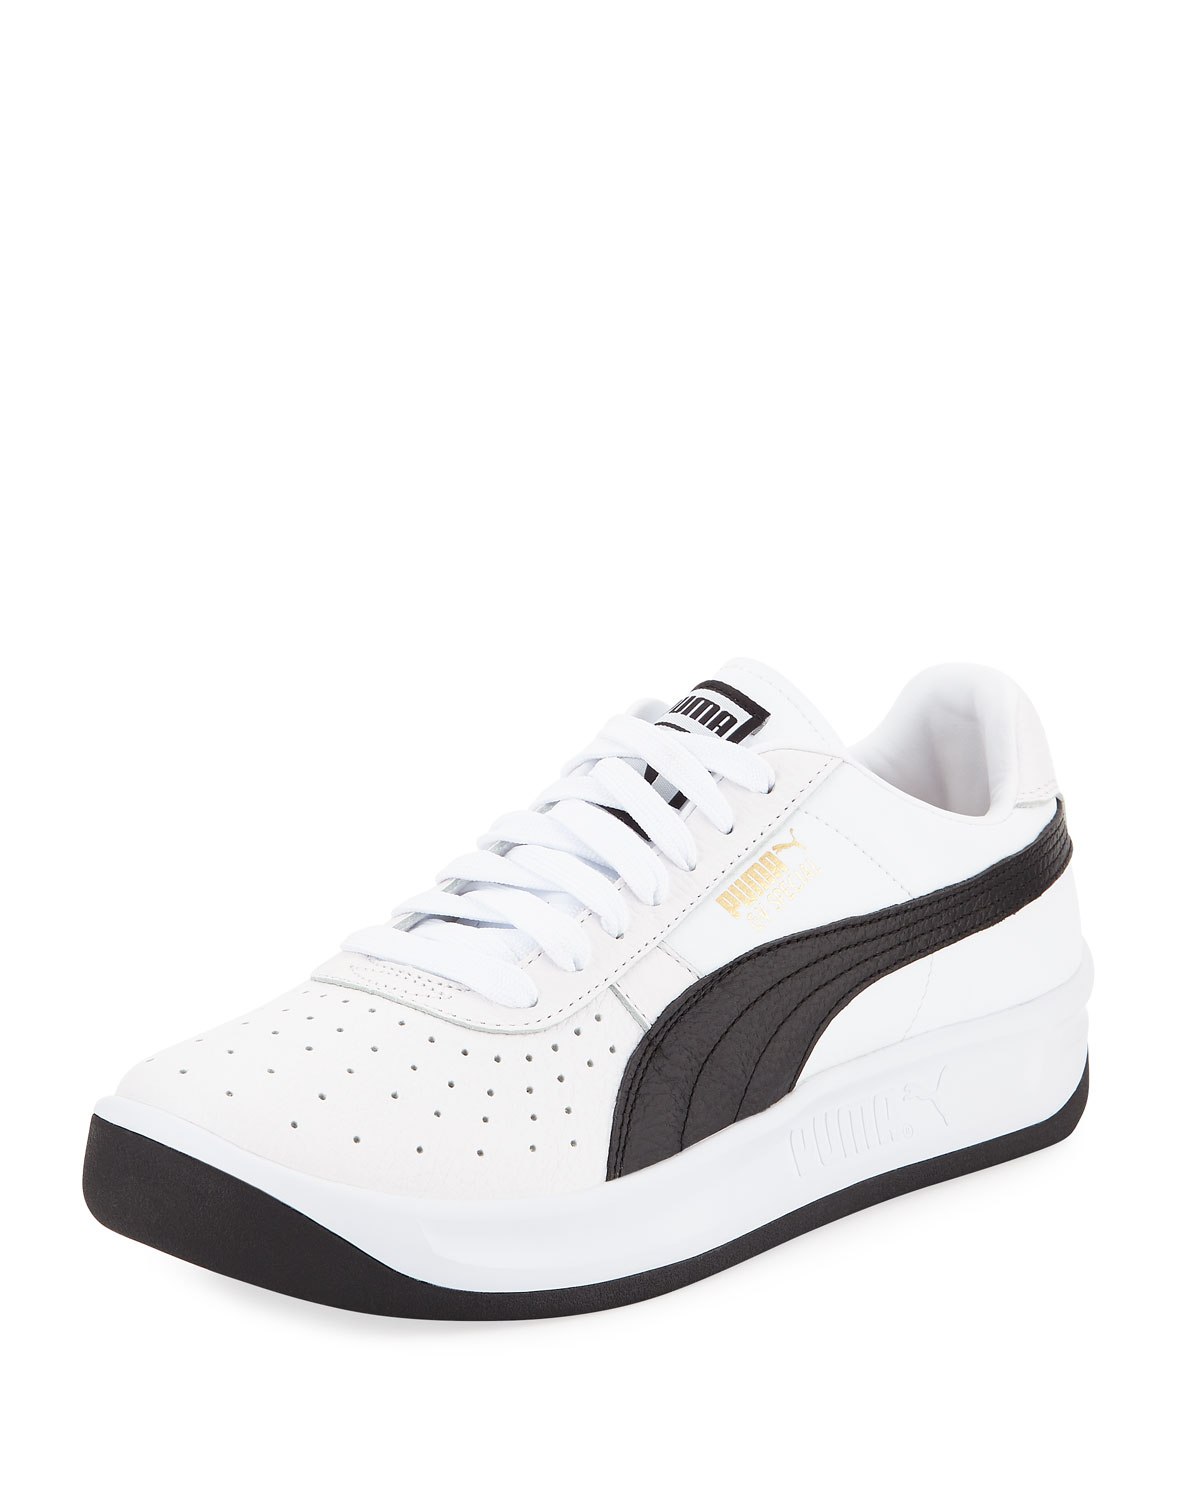 new product 9f0ca 1ee15 Men's GV Special Trainer Sneakers